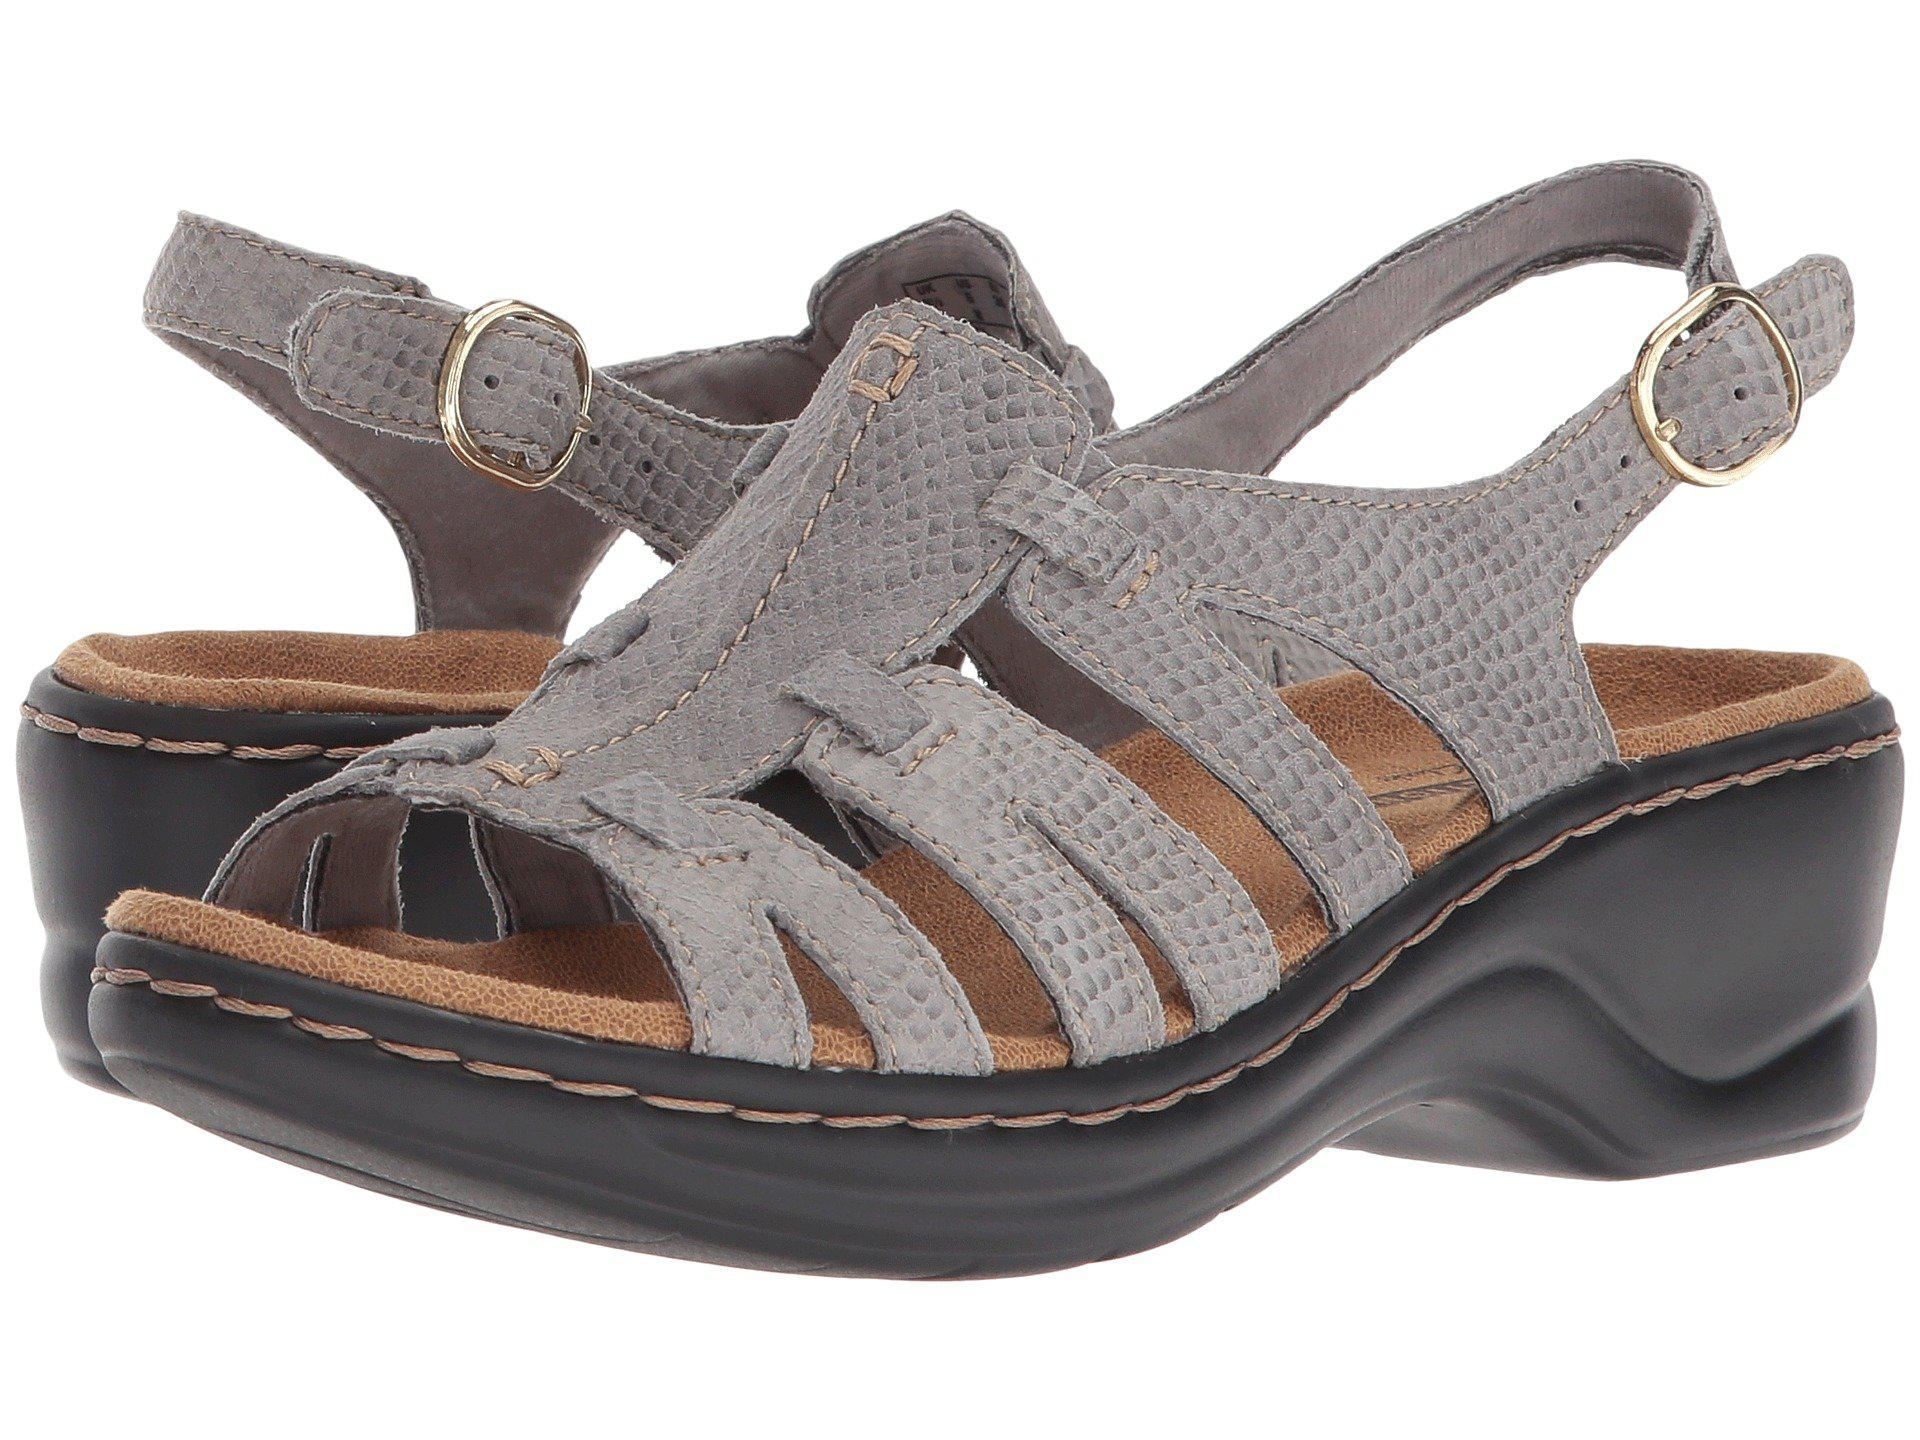 99c5307bd5bf4a Lyst - Clarks Lexi Marigold Q (white Leather) Women s Sandals in Gray